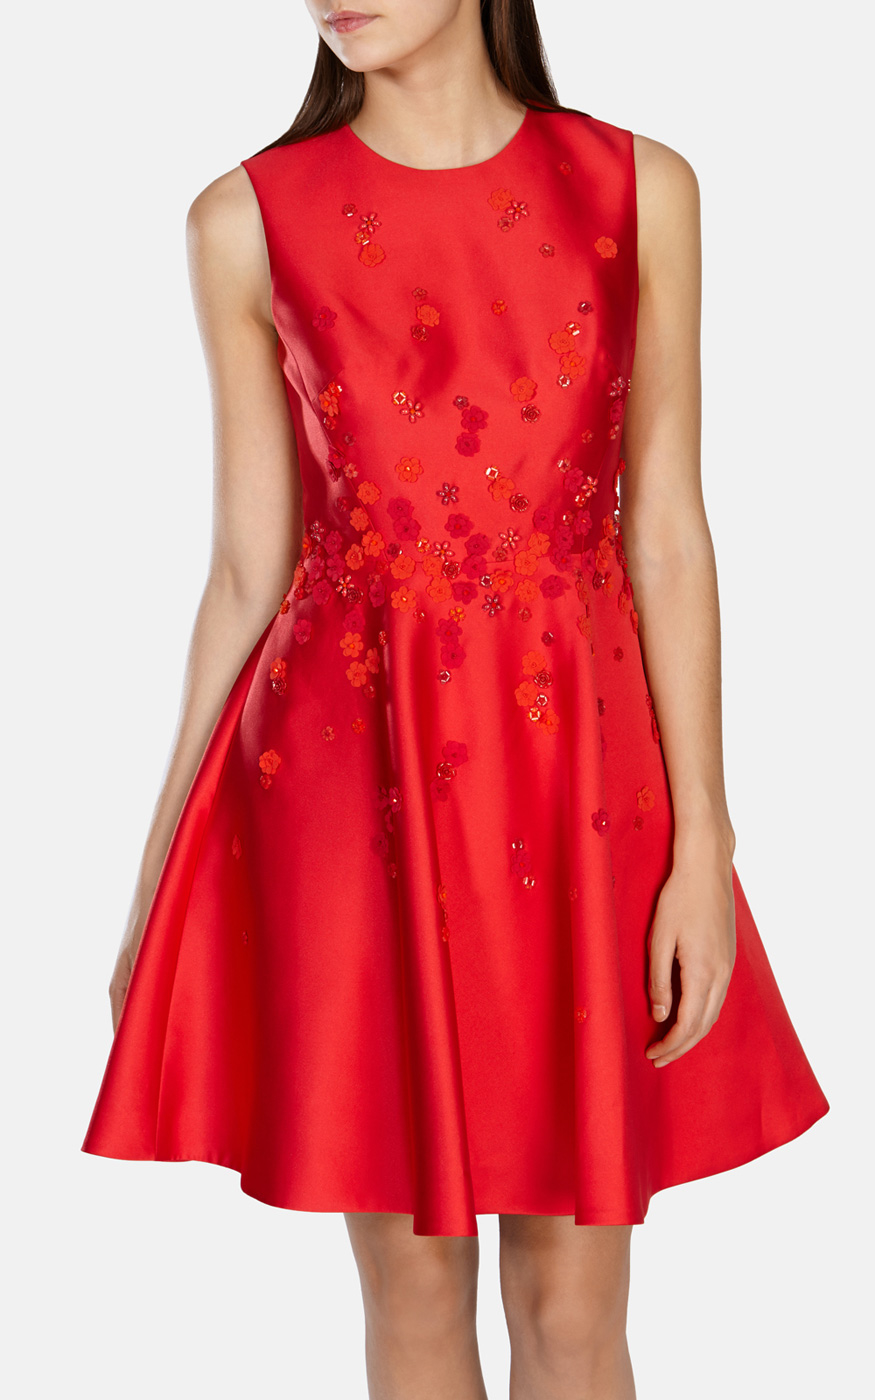 Karen millen red dress long